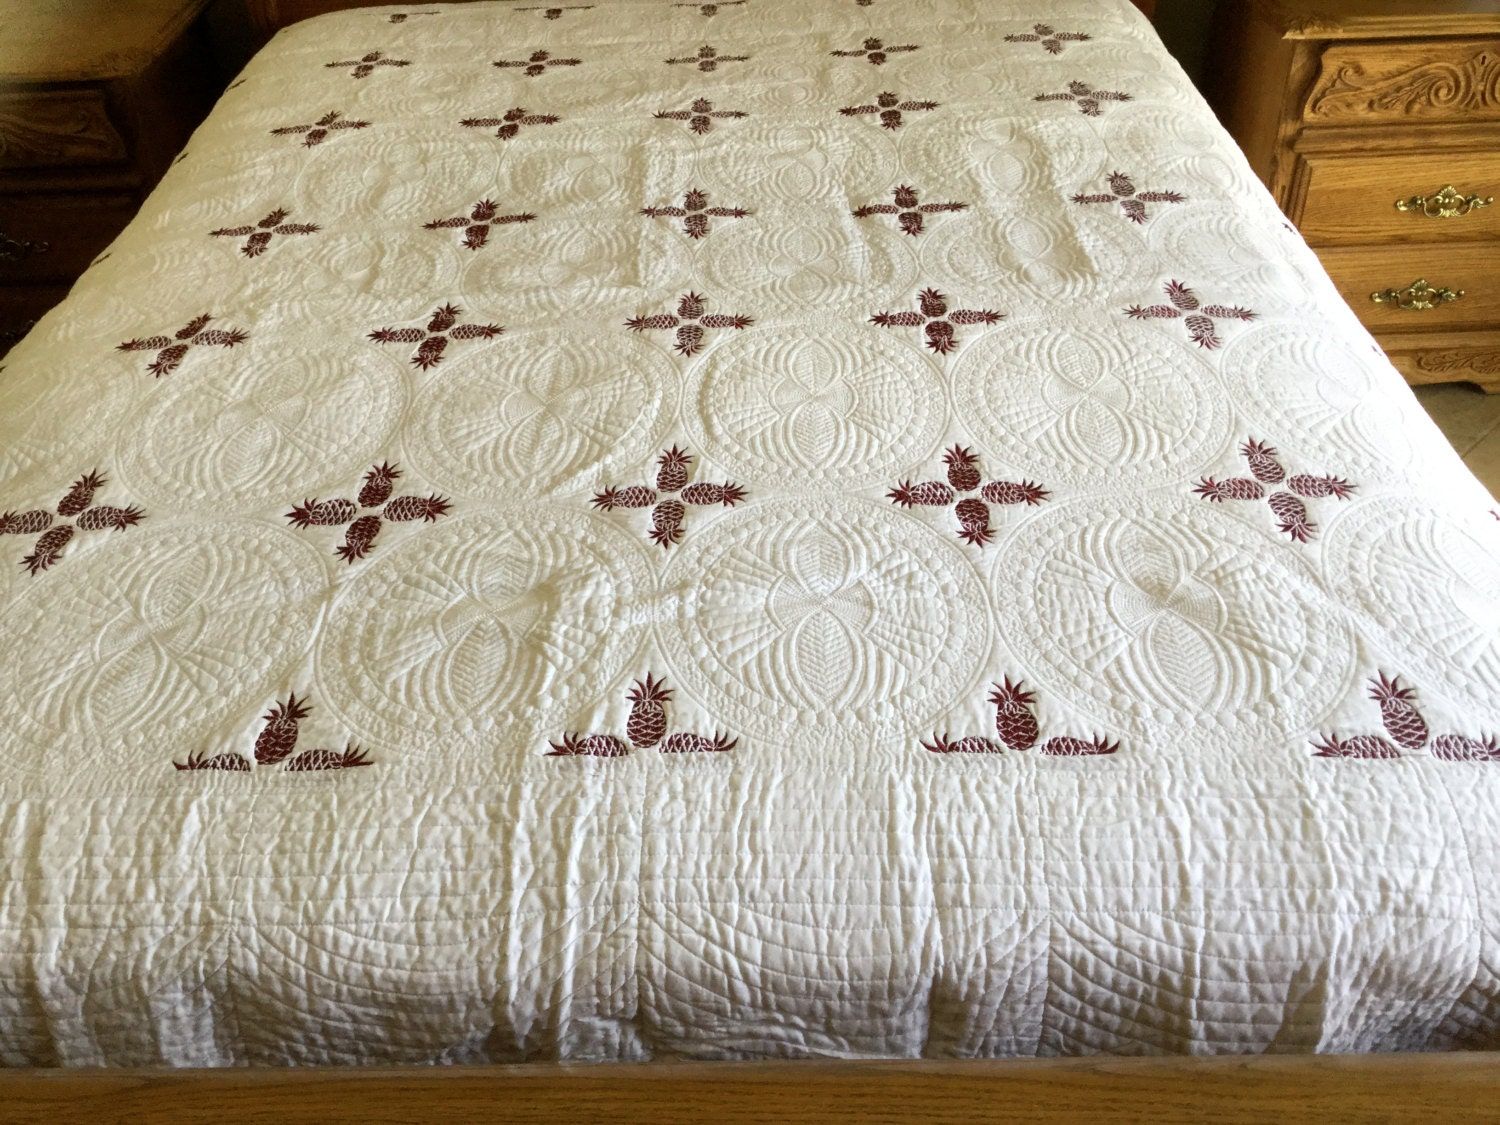 king size red wine with white pineapple design quilt 404. Black Bedroom Furniture Sets. Home Design Ideas